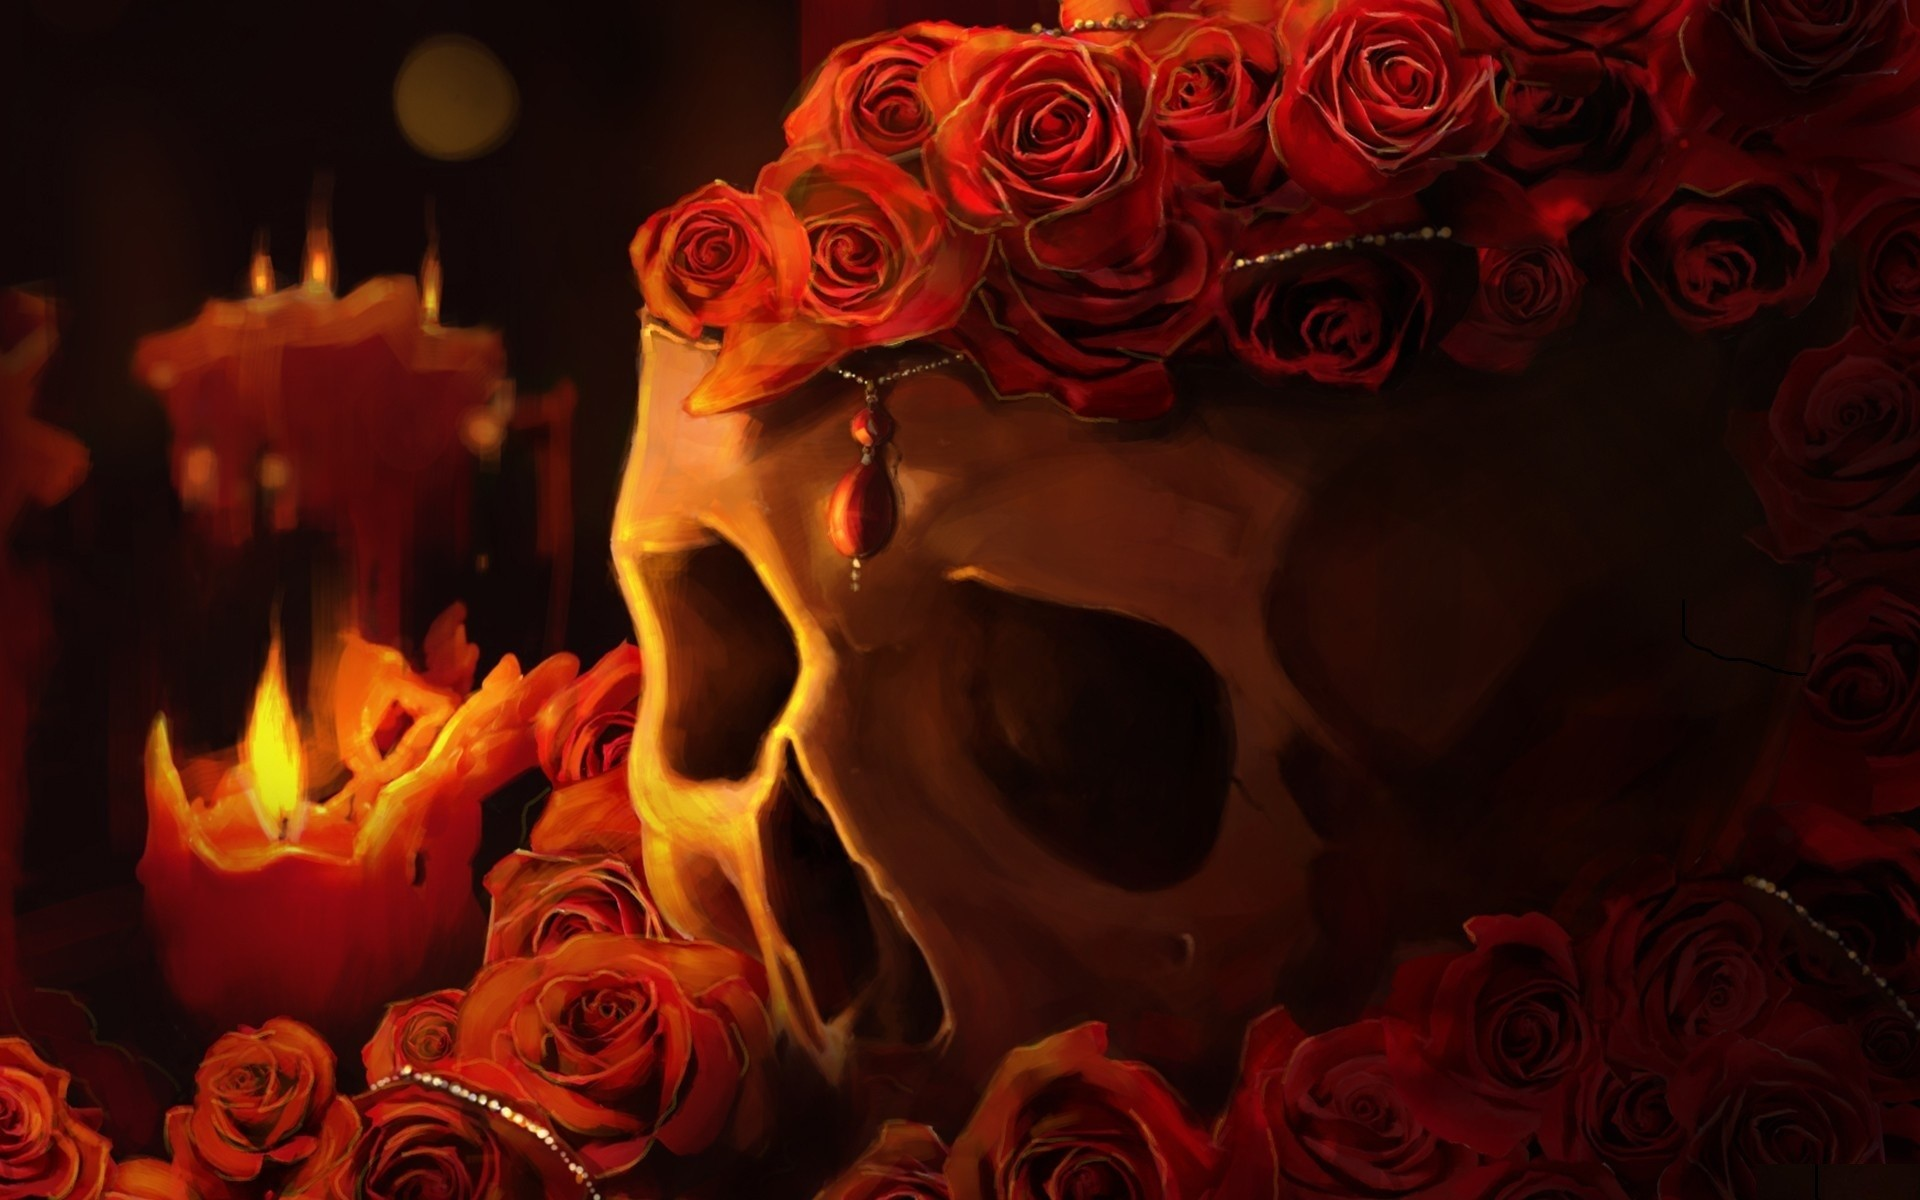 Roses Candles Fantasy candle skull goth gothic fire dark wallpaper .